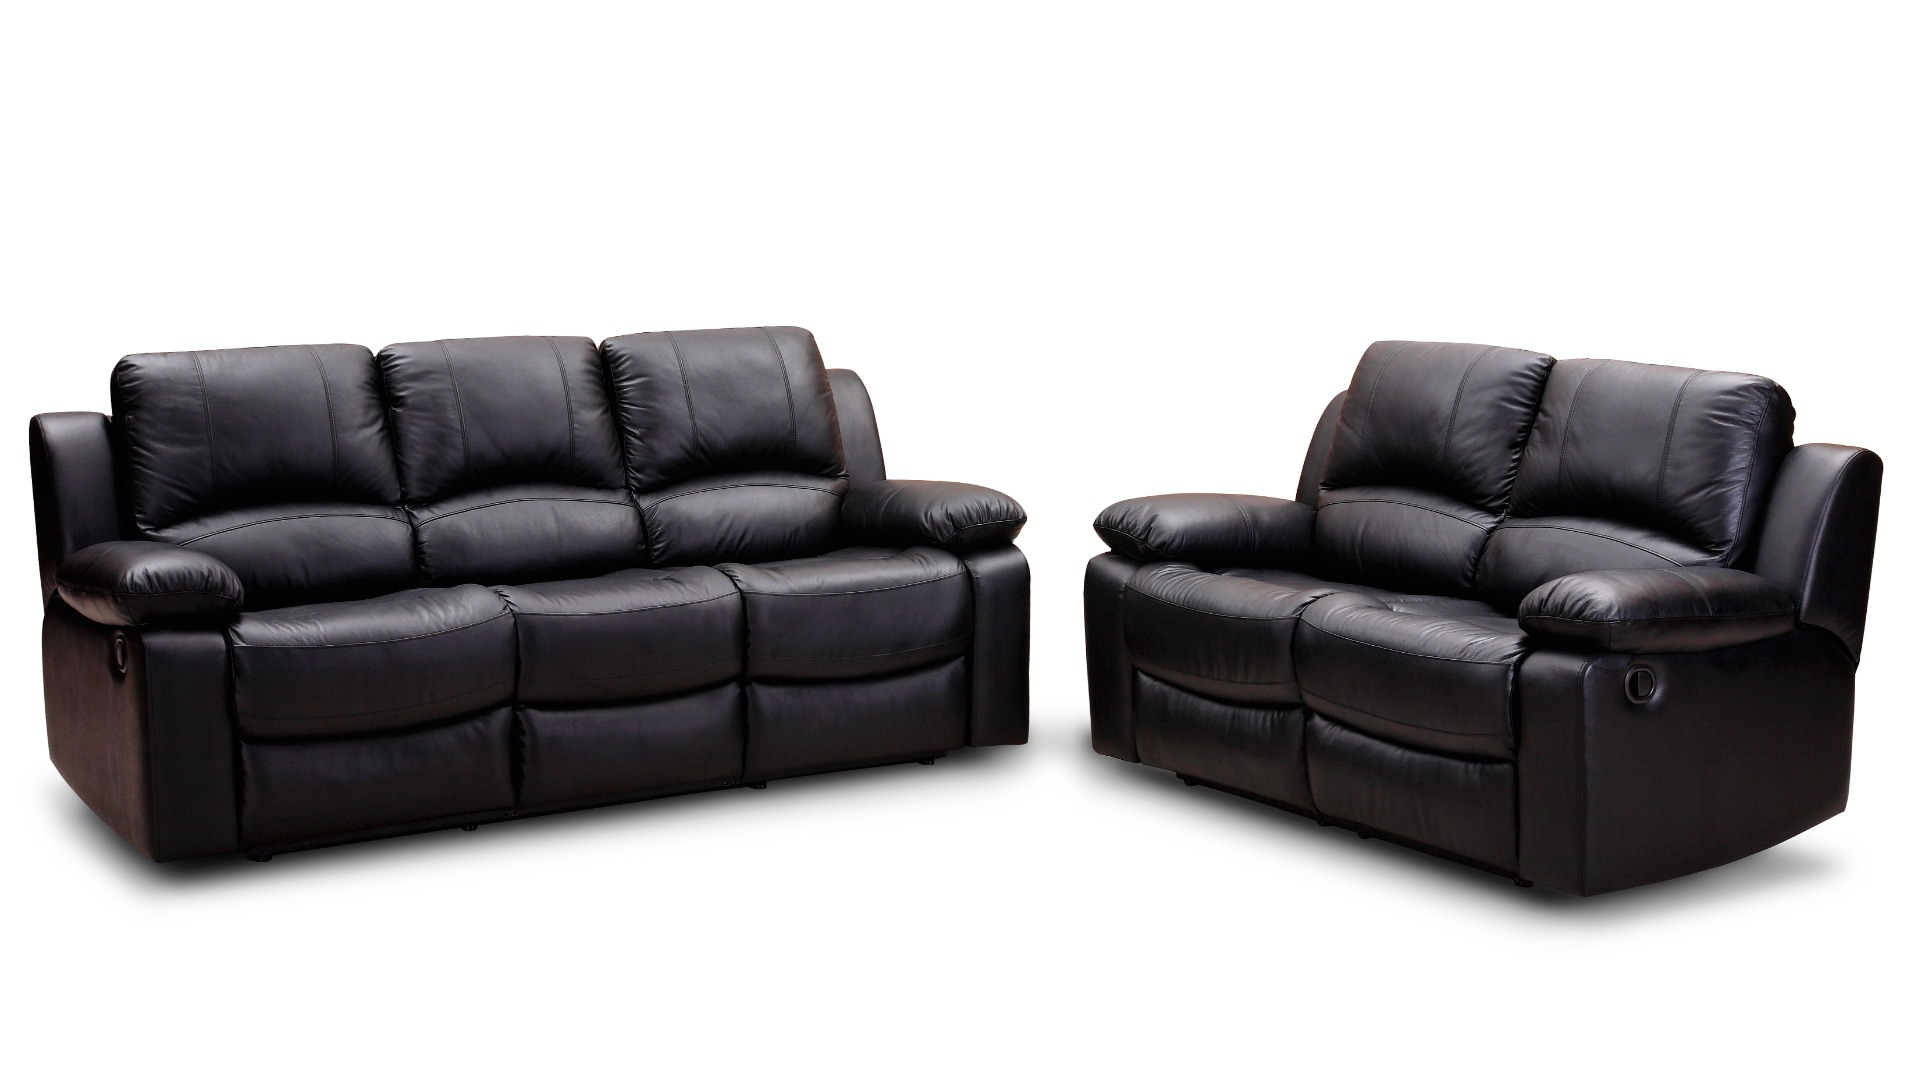 free download - Black Leather Loveseat